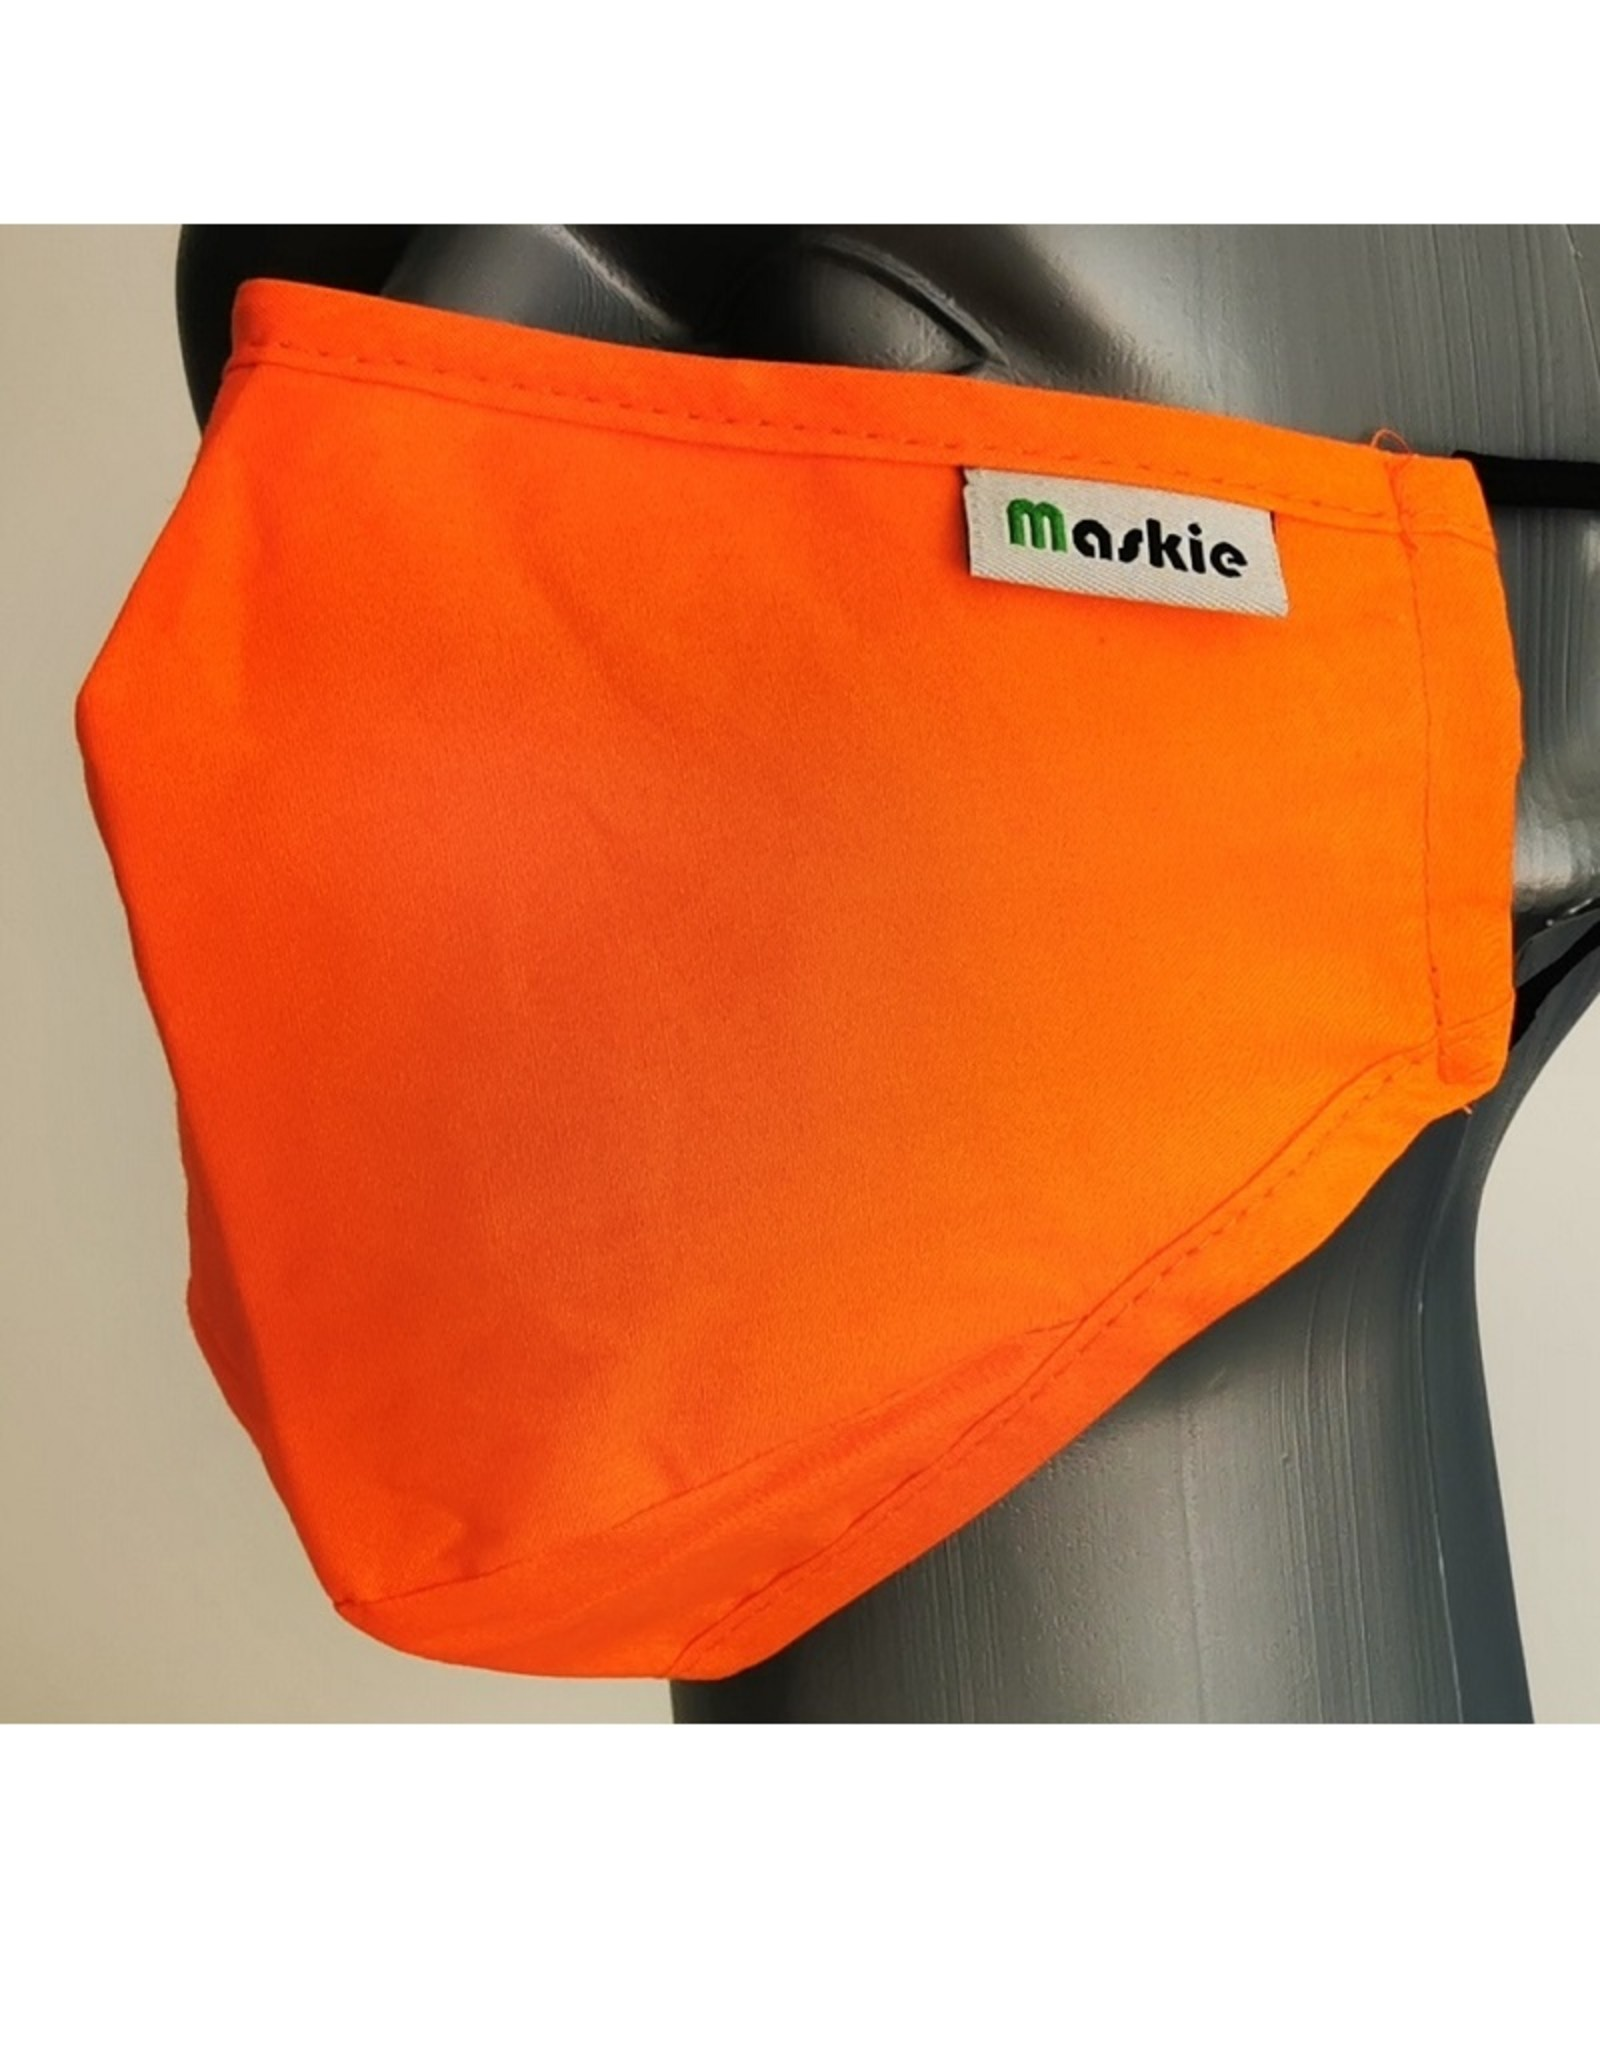 Maskie mask: Solid orange